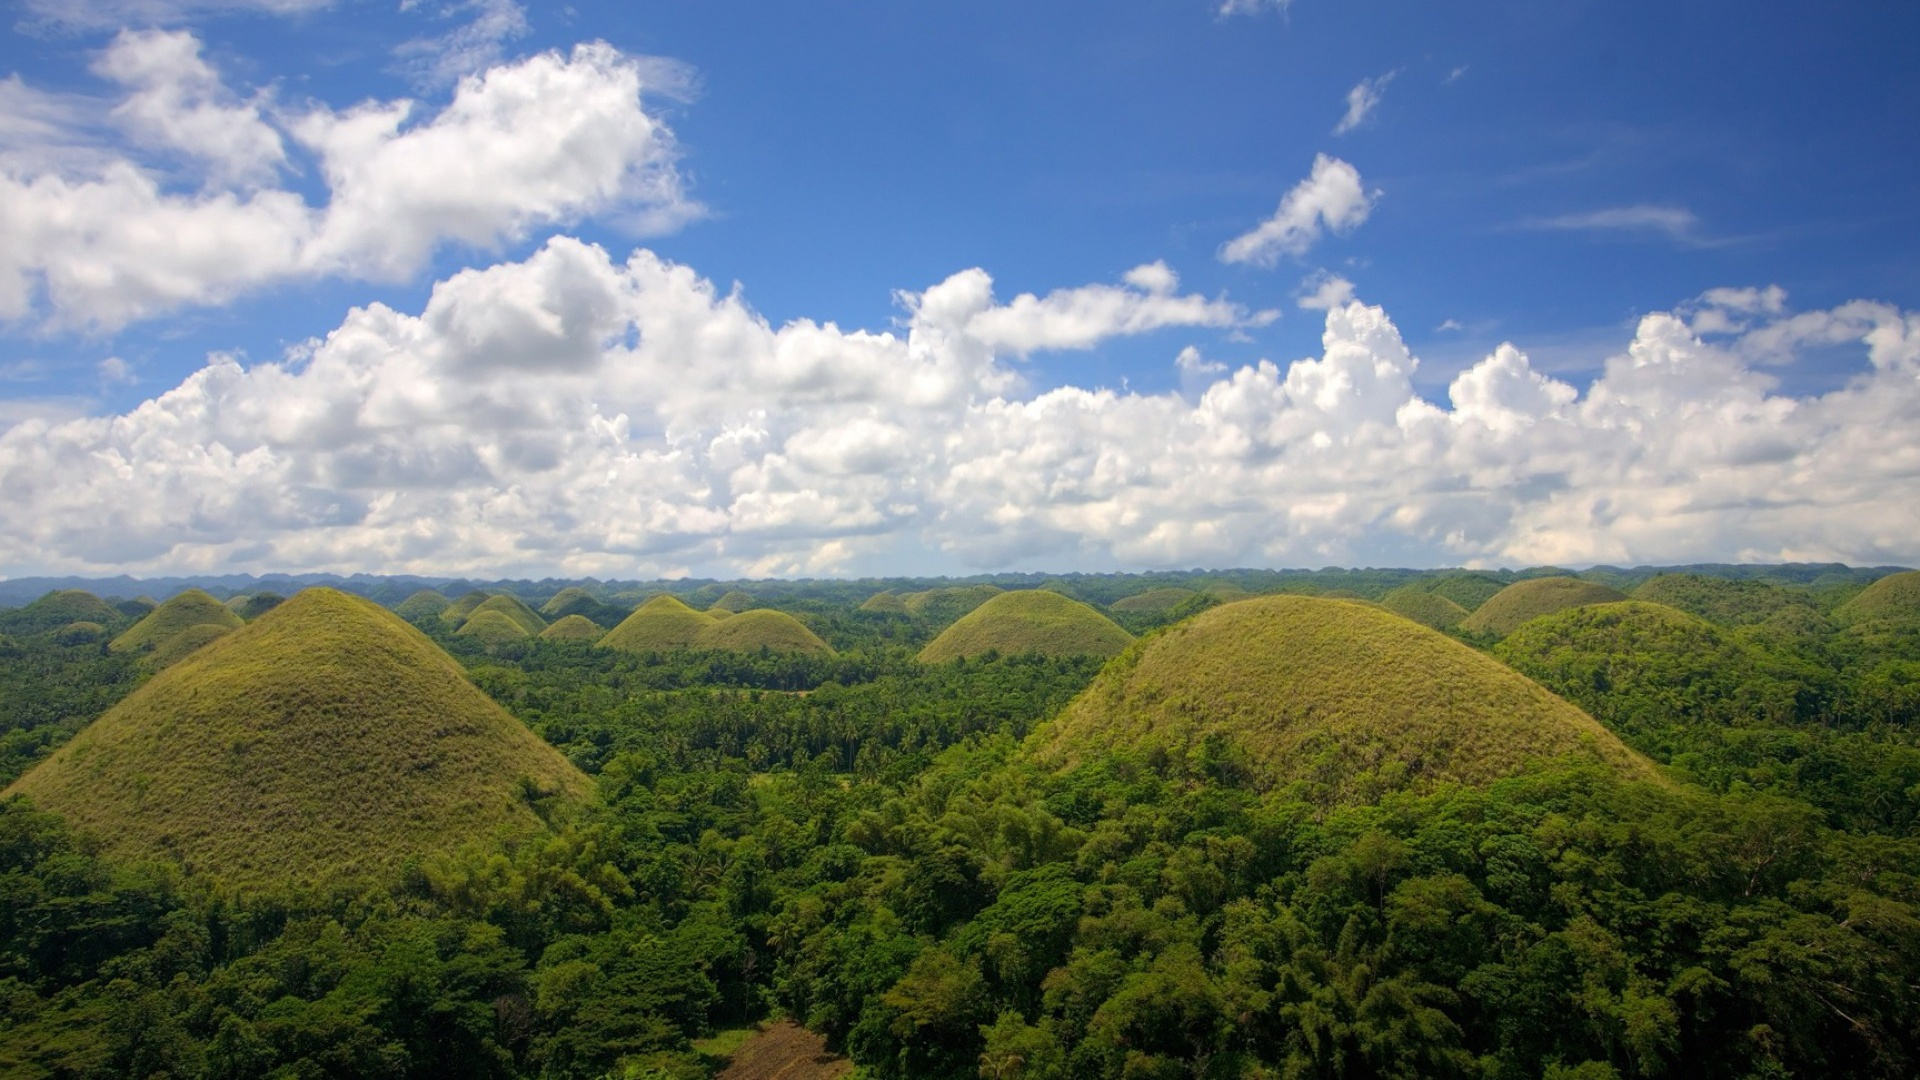 1920x1080 chocolate hills philippines desktop pc and mac for Wallpaper home philippines